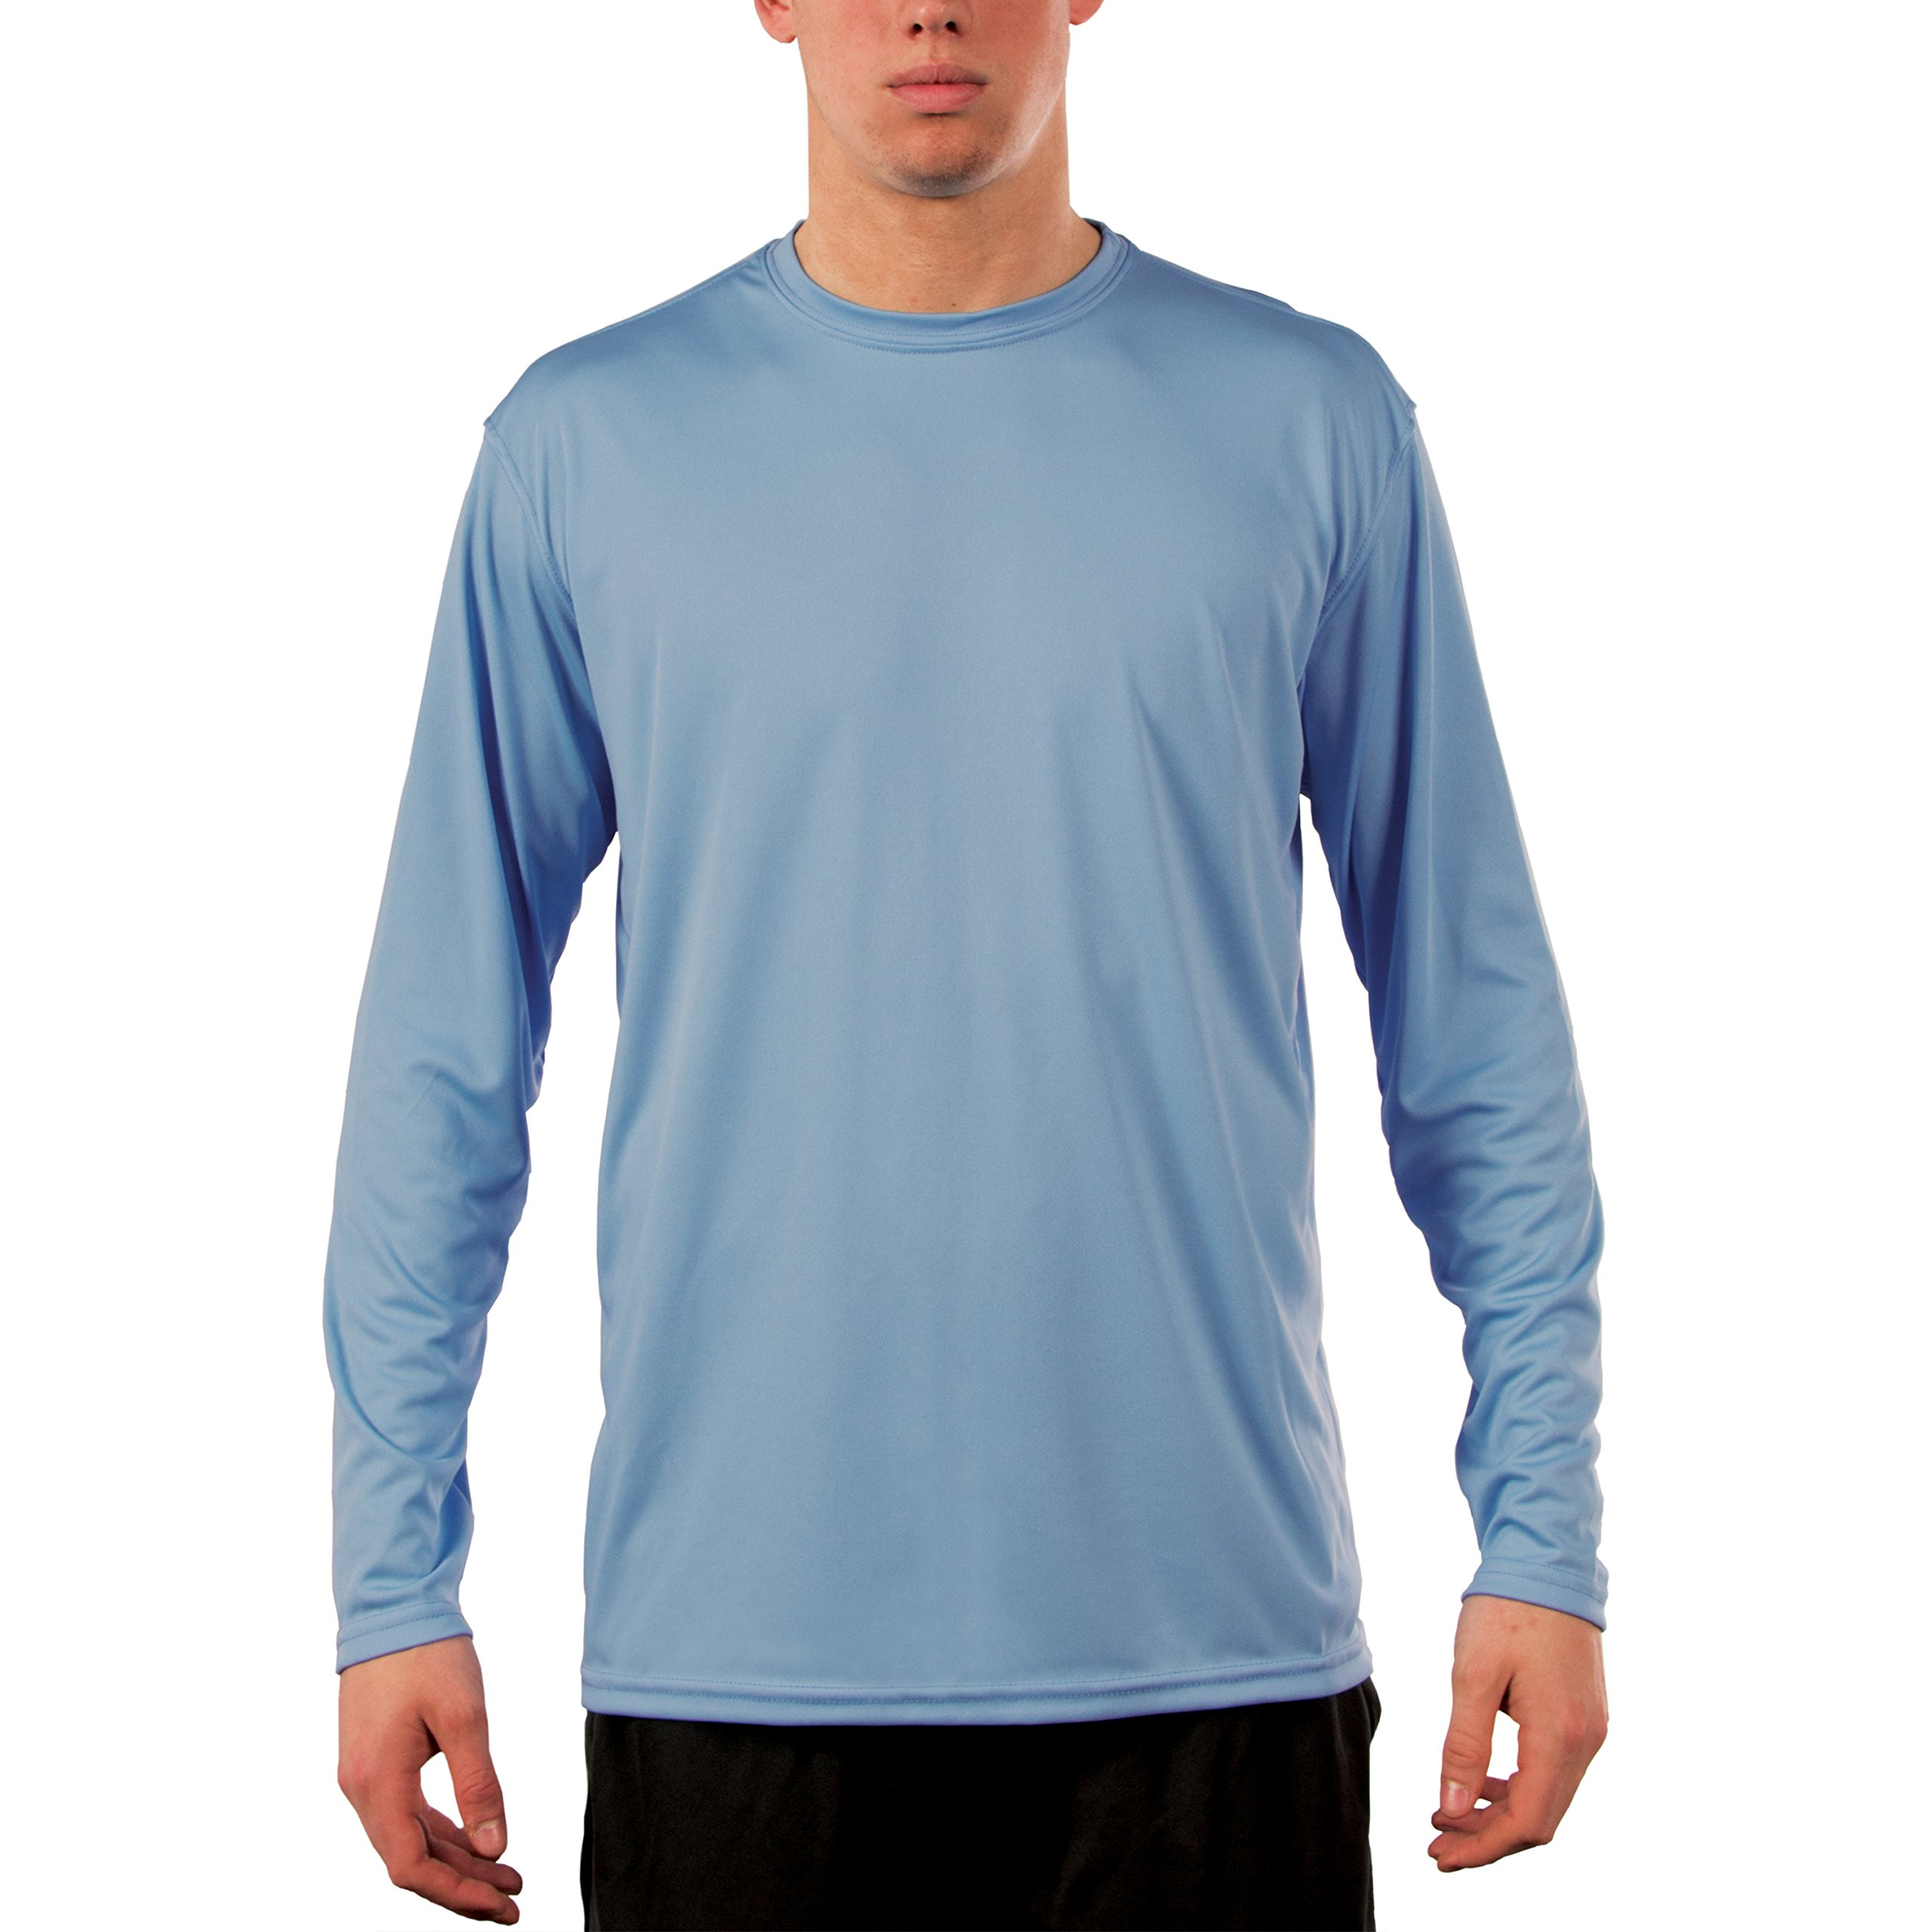 Vapor Apparel Men's UPF 50+ Sun Protection Performance Long Sleeve T-shirt X-Large Columbia Blue